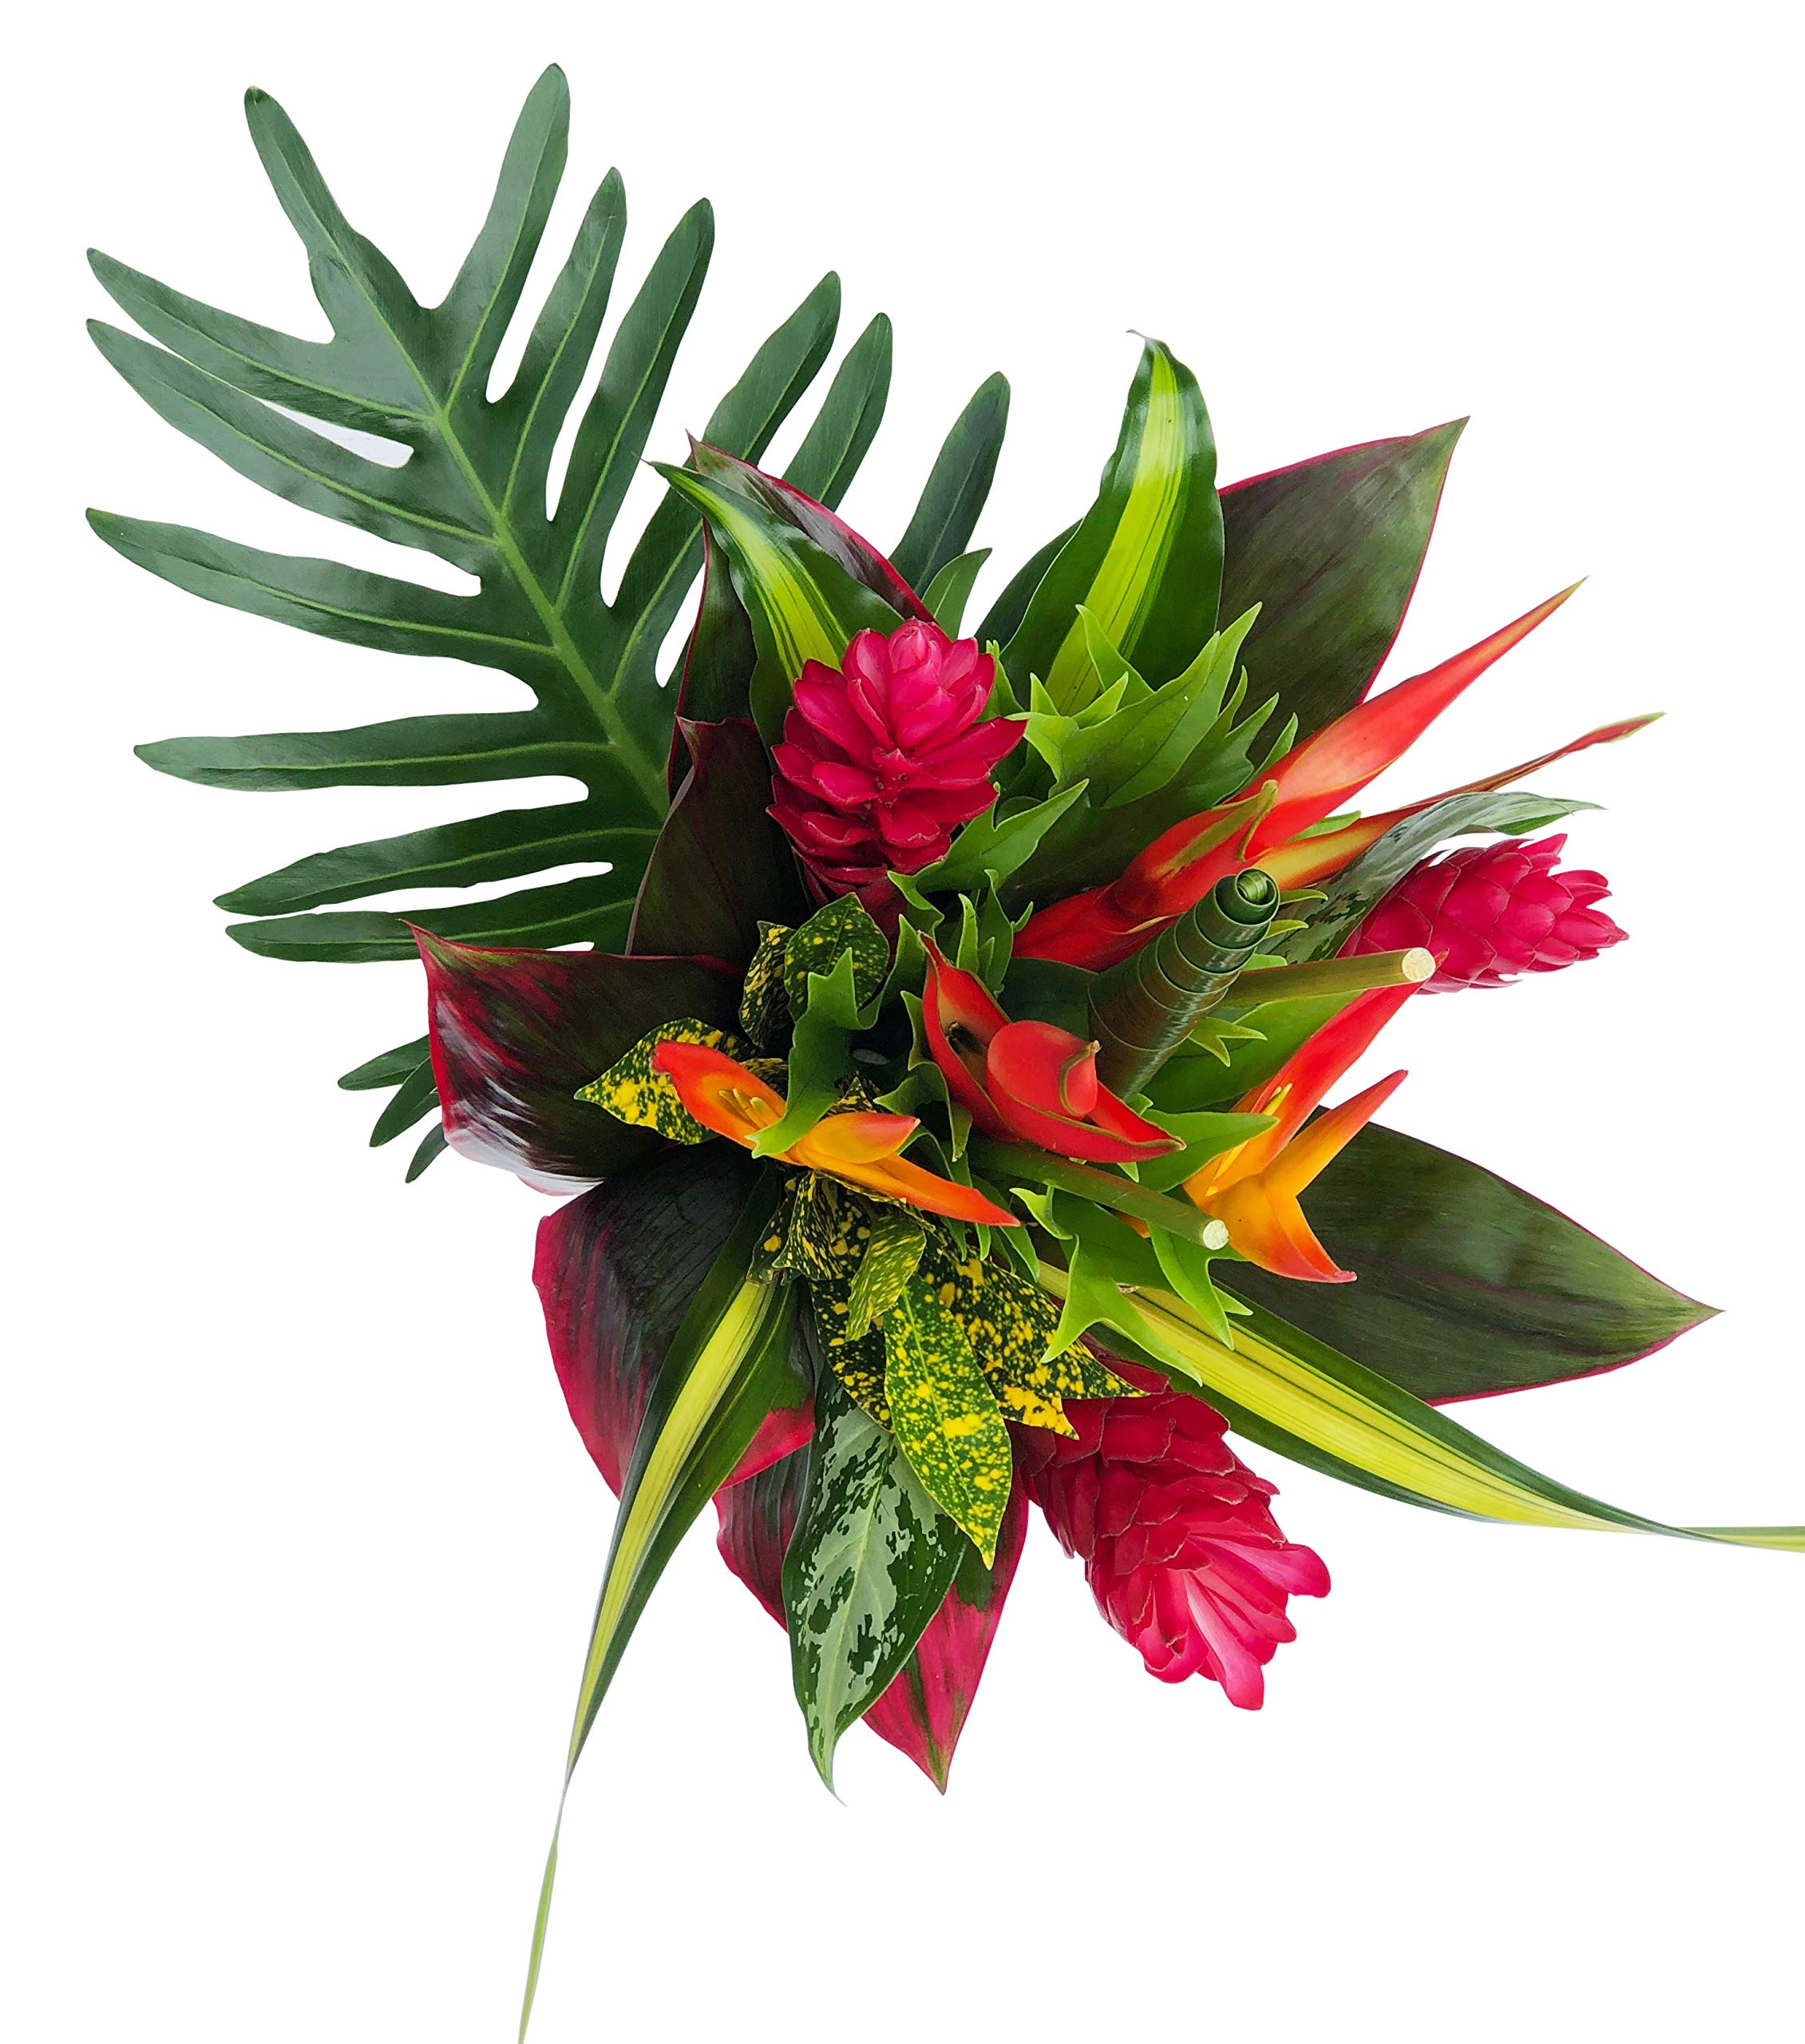 Tropical Bouquet Tropical Treasure with Bright Birds of Paradise, Pink Ginger, and Bold Tropical Greenery by BloomsyBox